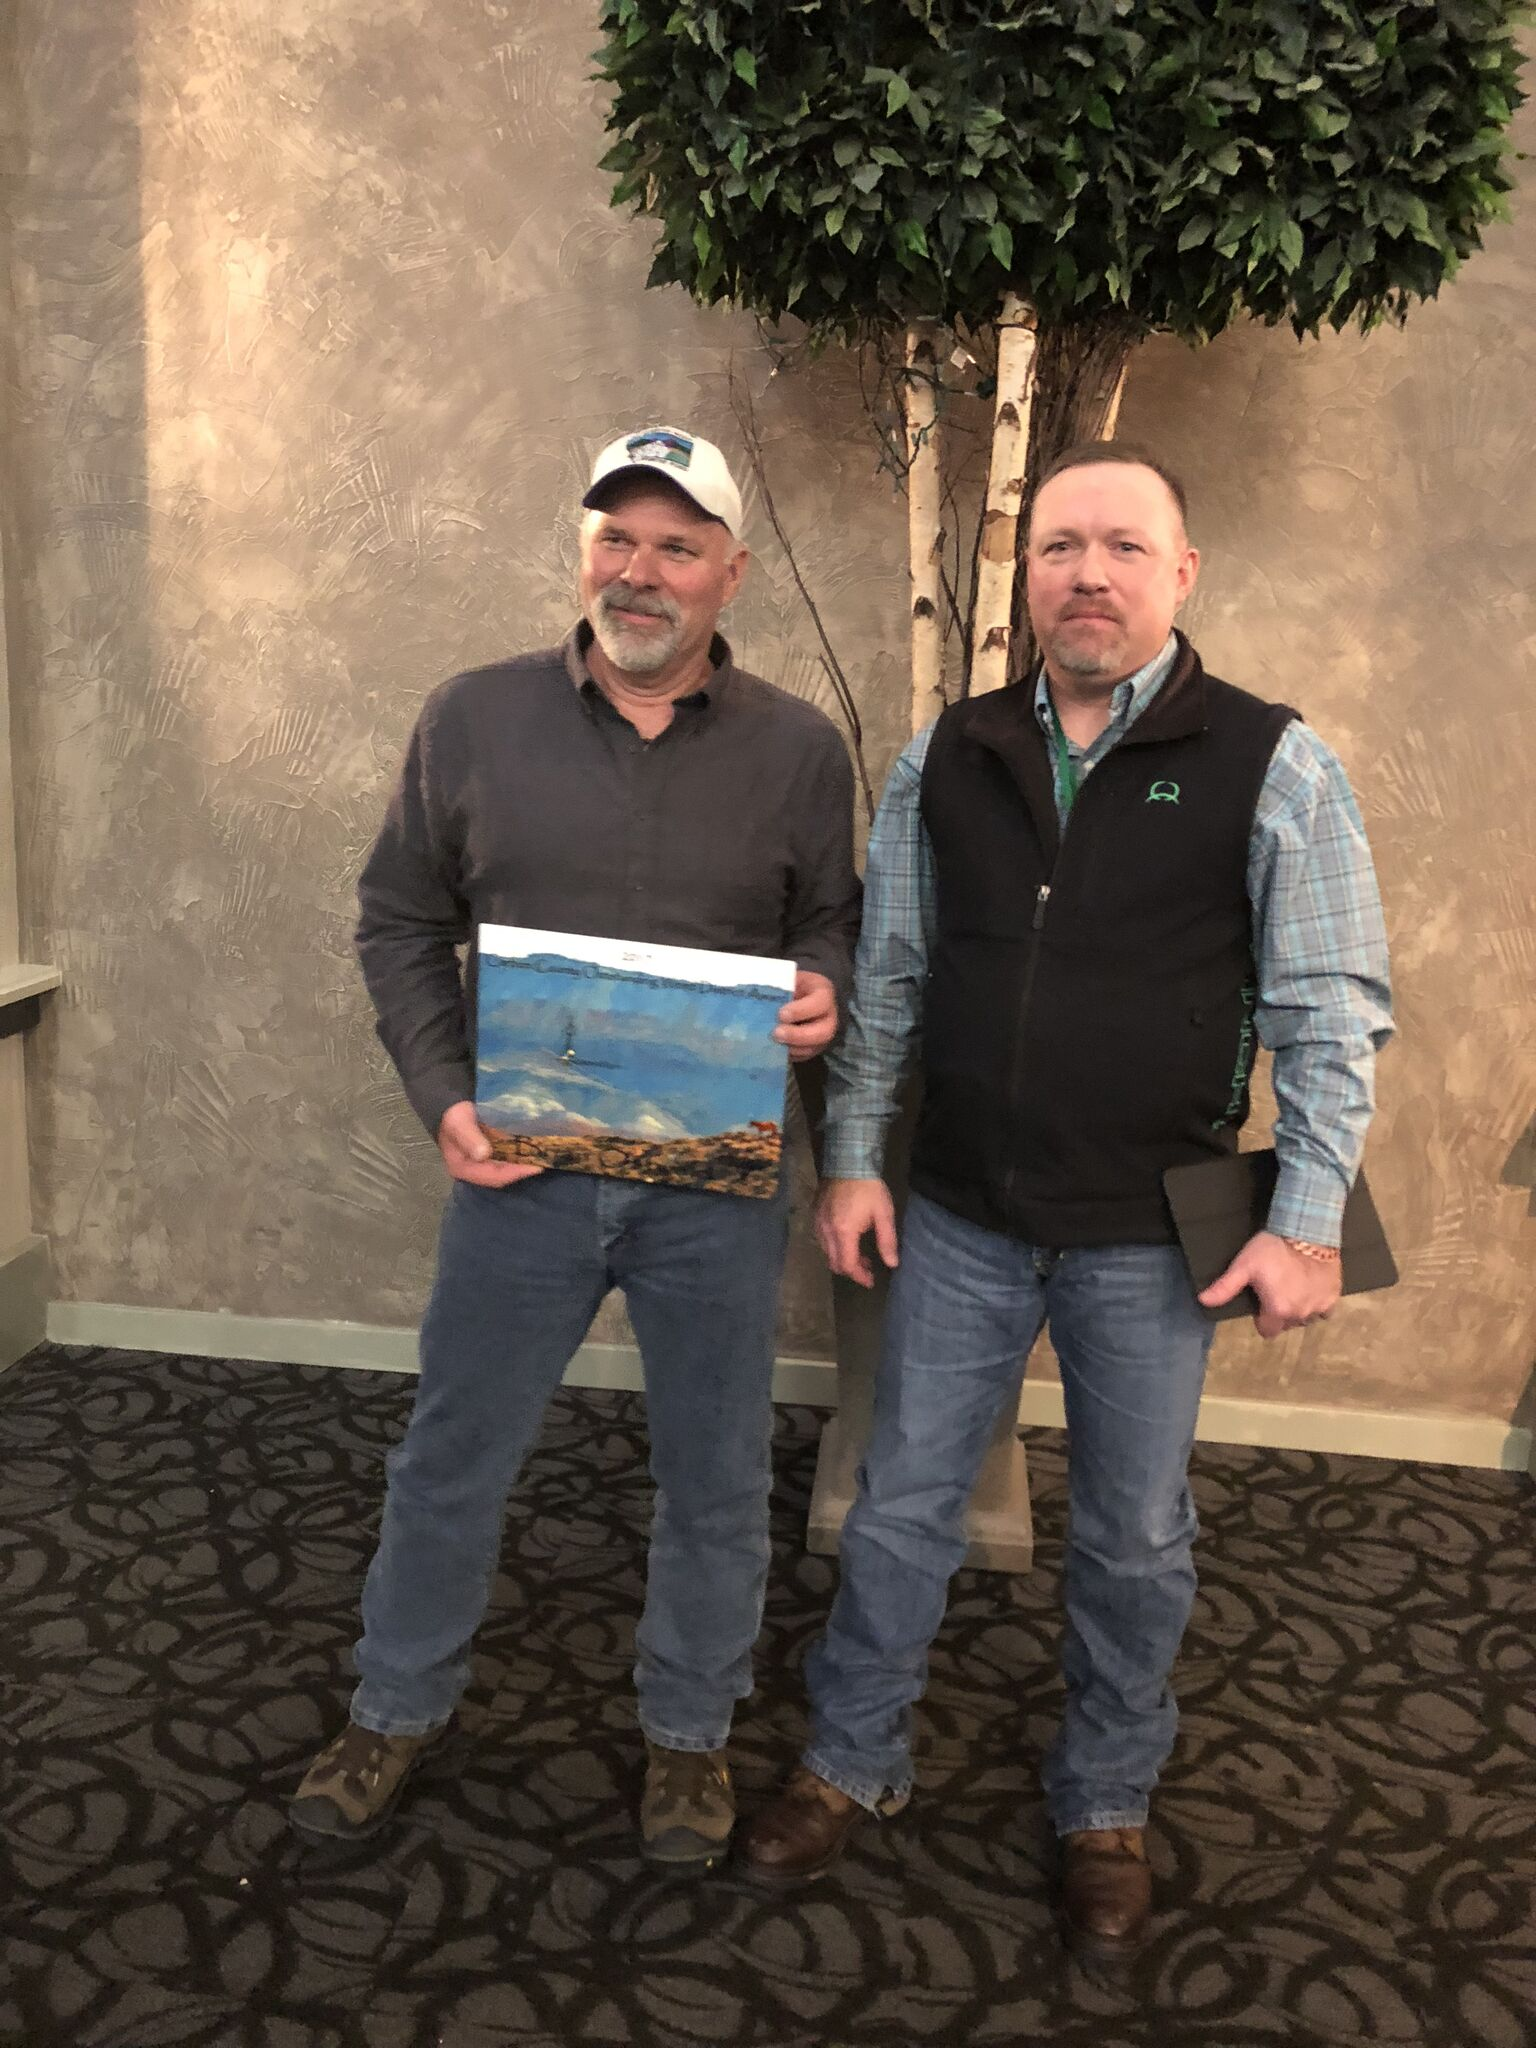 Ostwald weed district of year